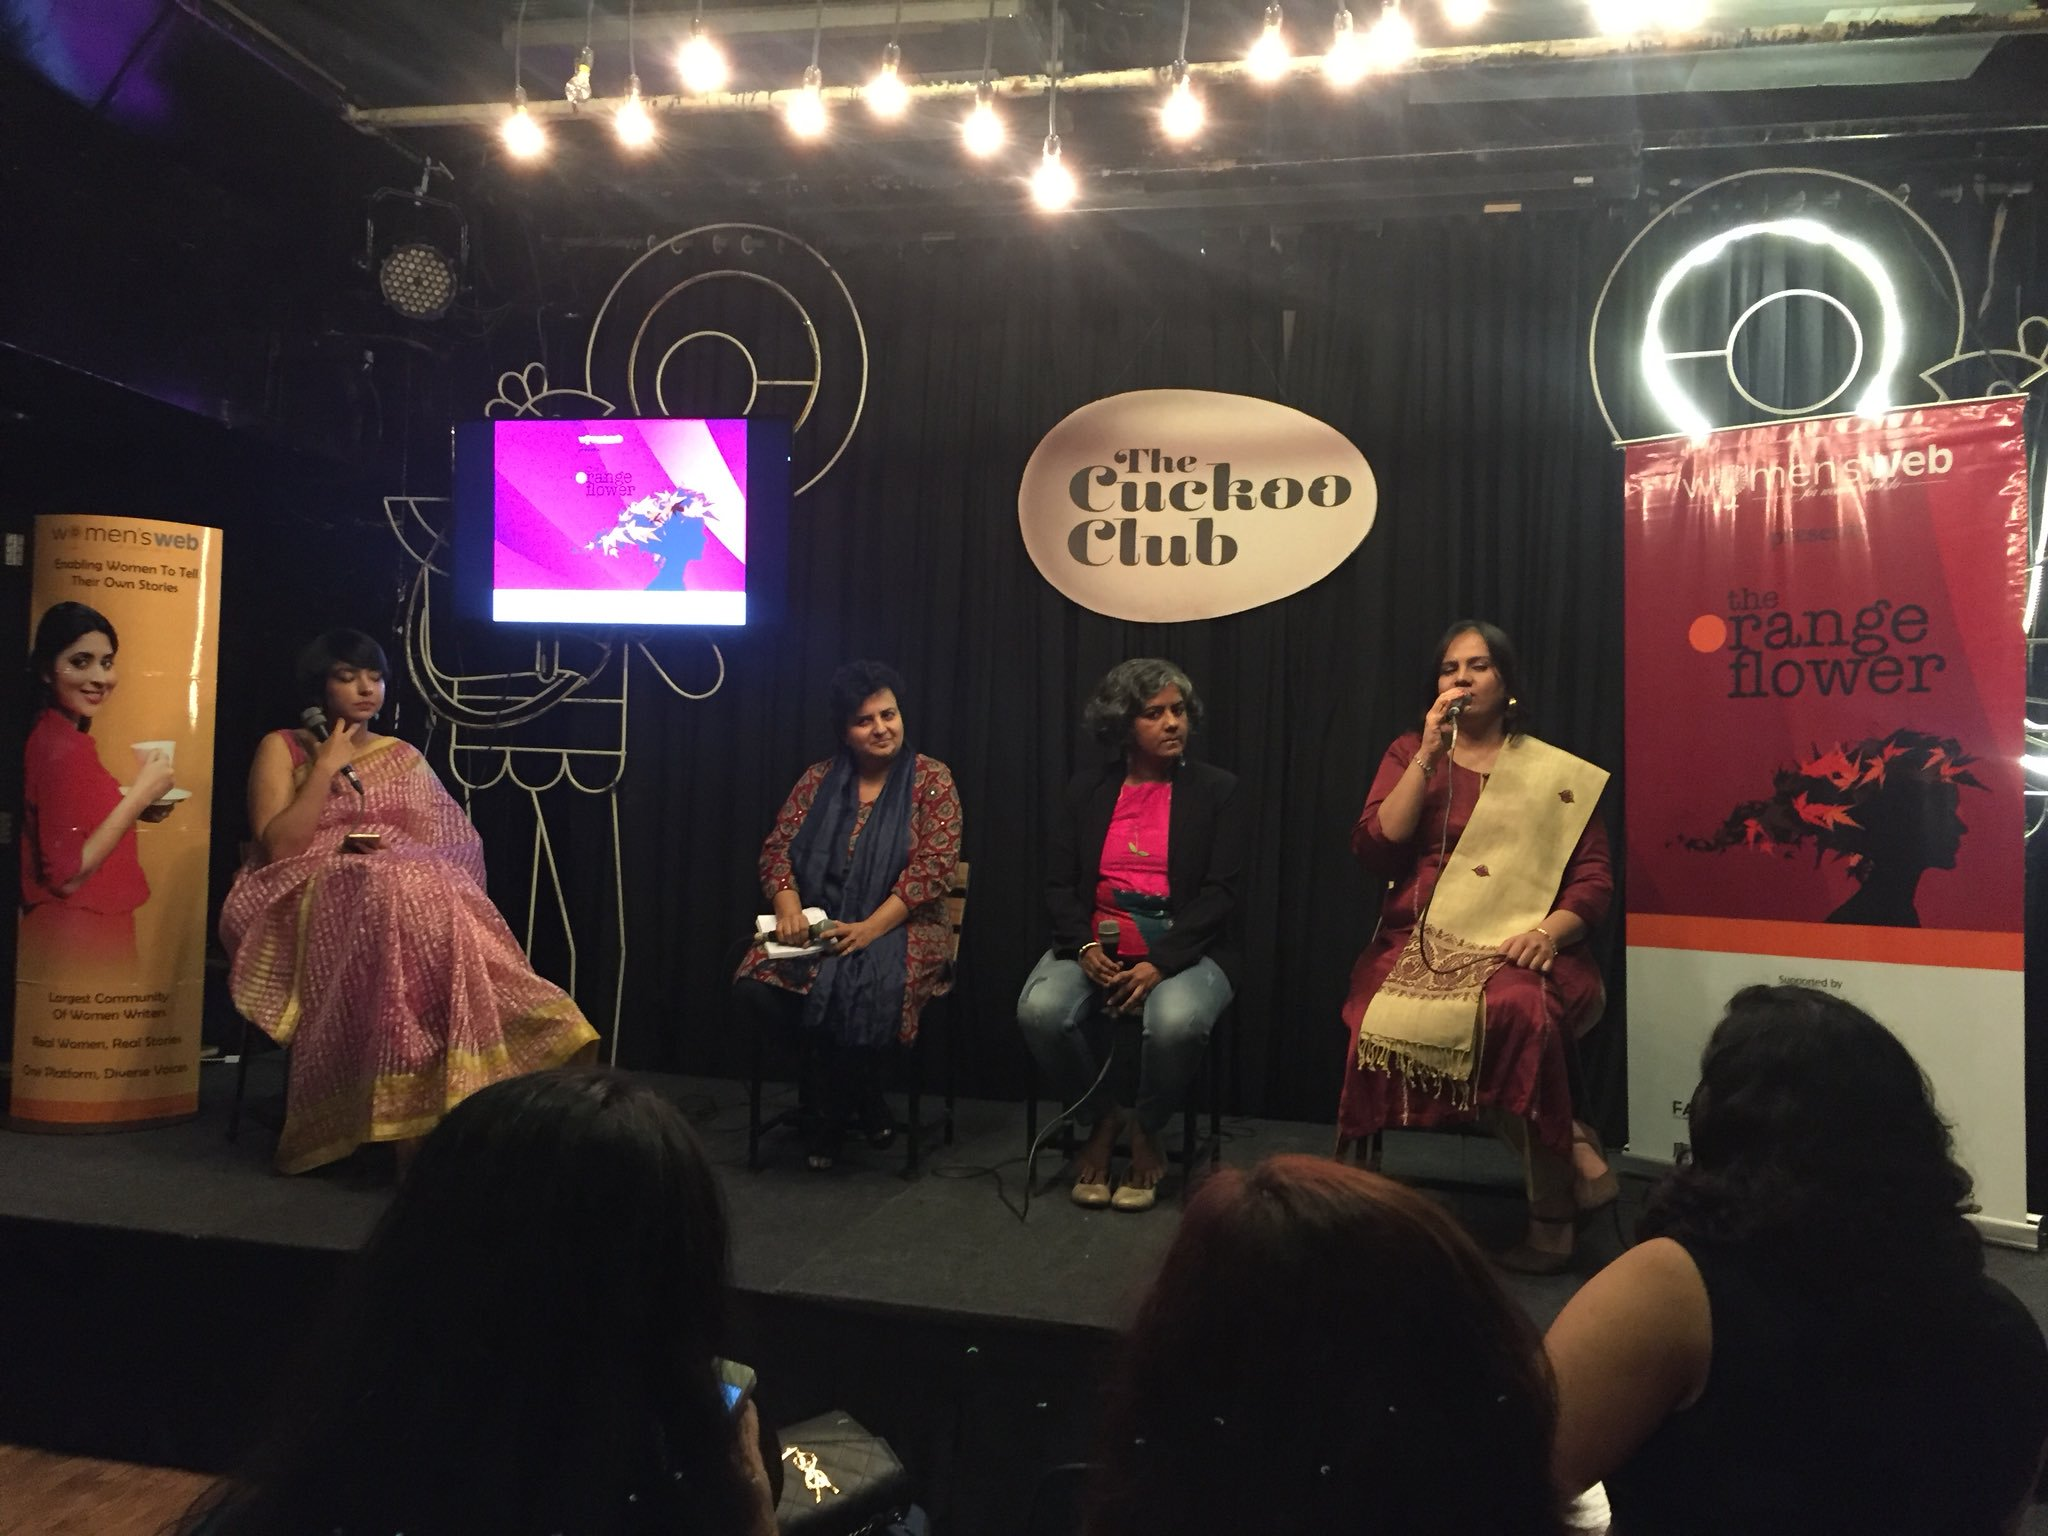 "Four women are sitting on chairs on a black stage and in the background there are black curtains. On a light brown oval shaped board, the words: The Cuckoo Club"" is written. There is a television screen on a stand on the left side. A woman with short hair and a pink saree is sitting beside the television, on her right is Dr. Shilpa Phadke, on her right is author Lalita Iyer and on the extreme is Nidhi Goyal, speaking into the mic. From the audience, the backs of 3 women are visible. On the extreme right there is a banner which is red and white in color and has the words ""Orange Flower Summit"" and the silhouette of a woman's side profile face and neck."